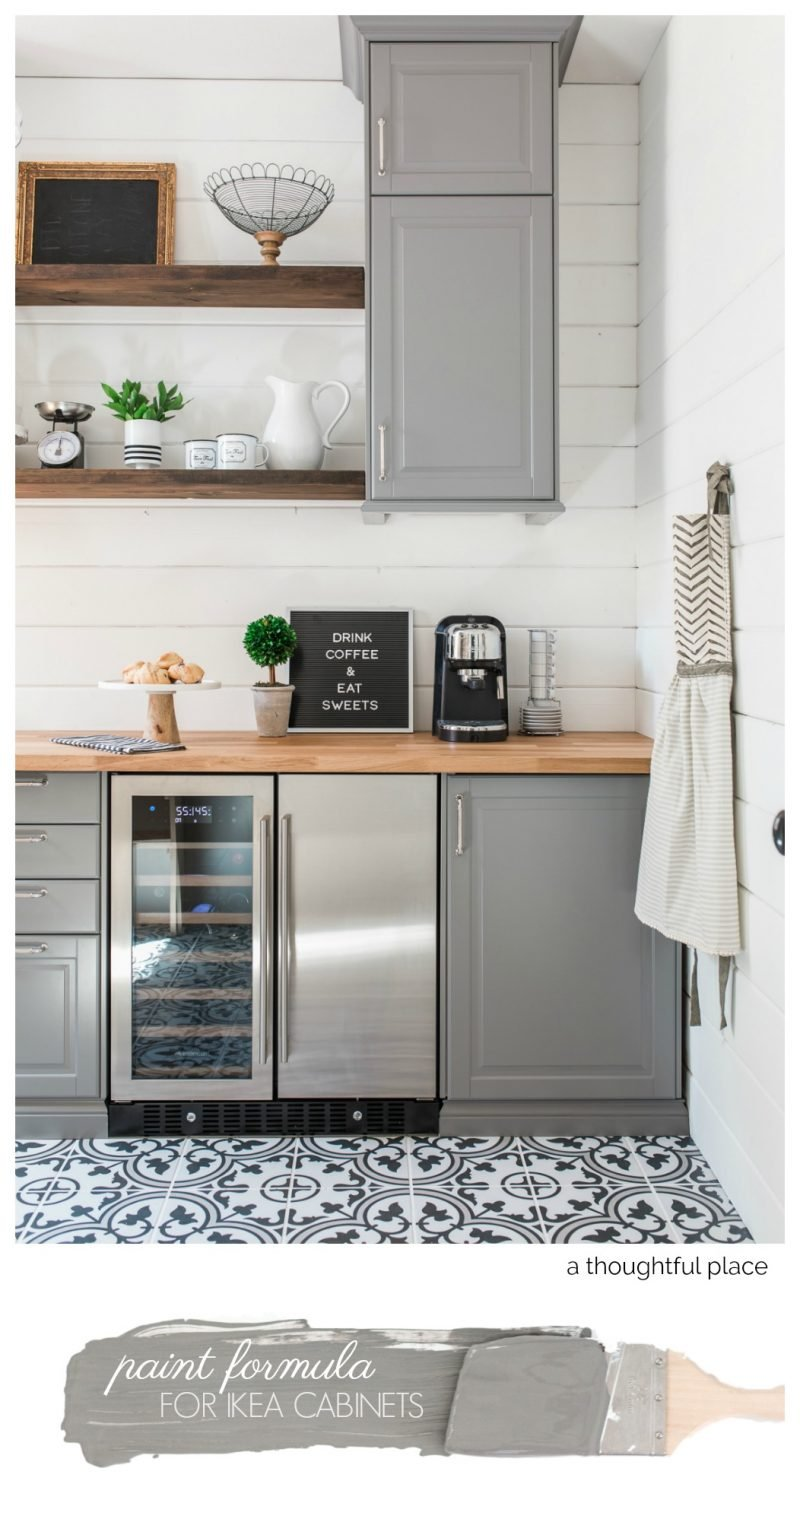 How To Match Ikea Cabinet Color A Thoughtful Place